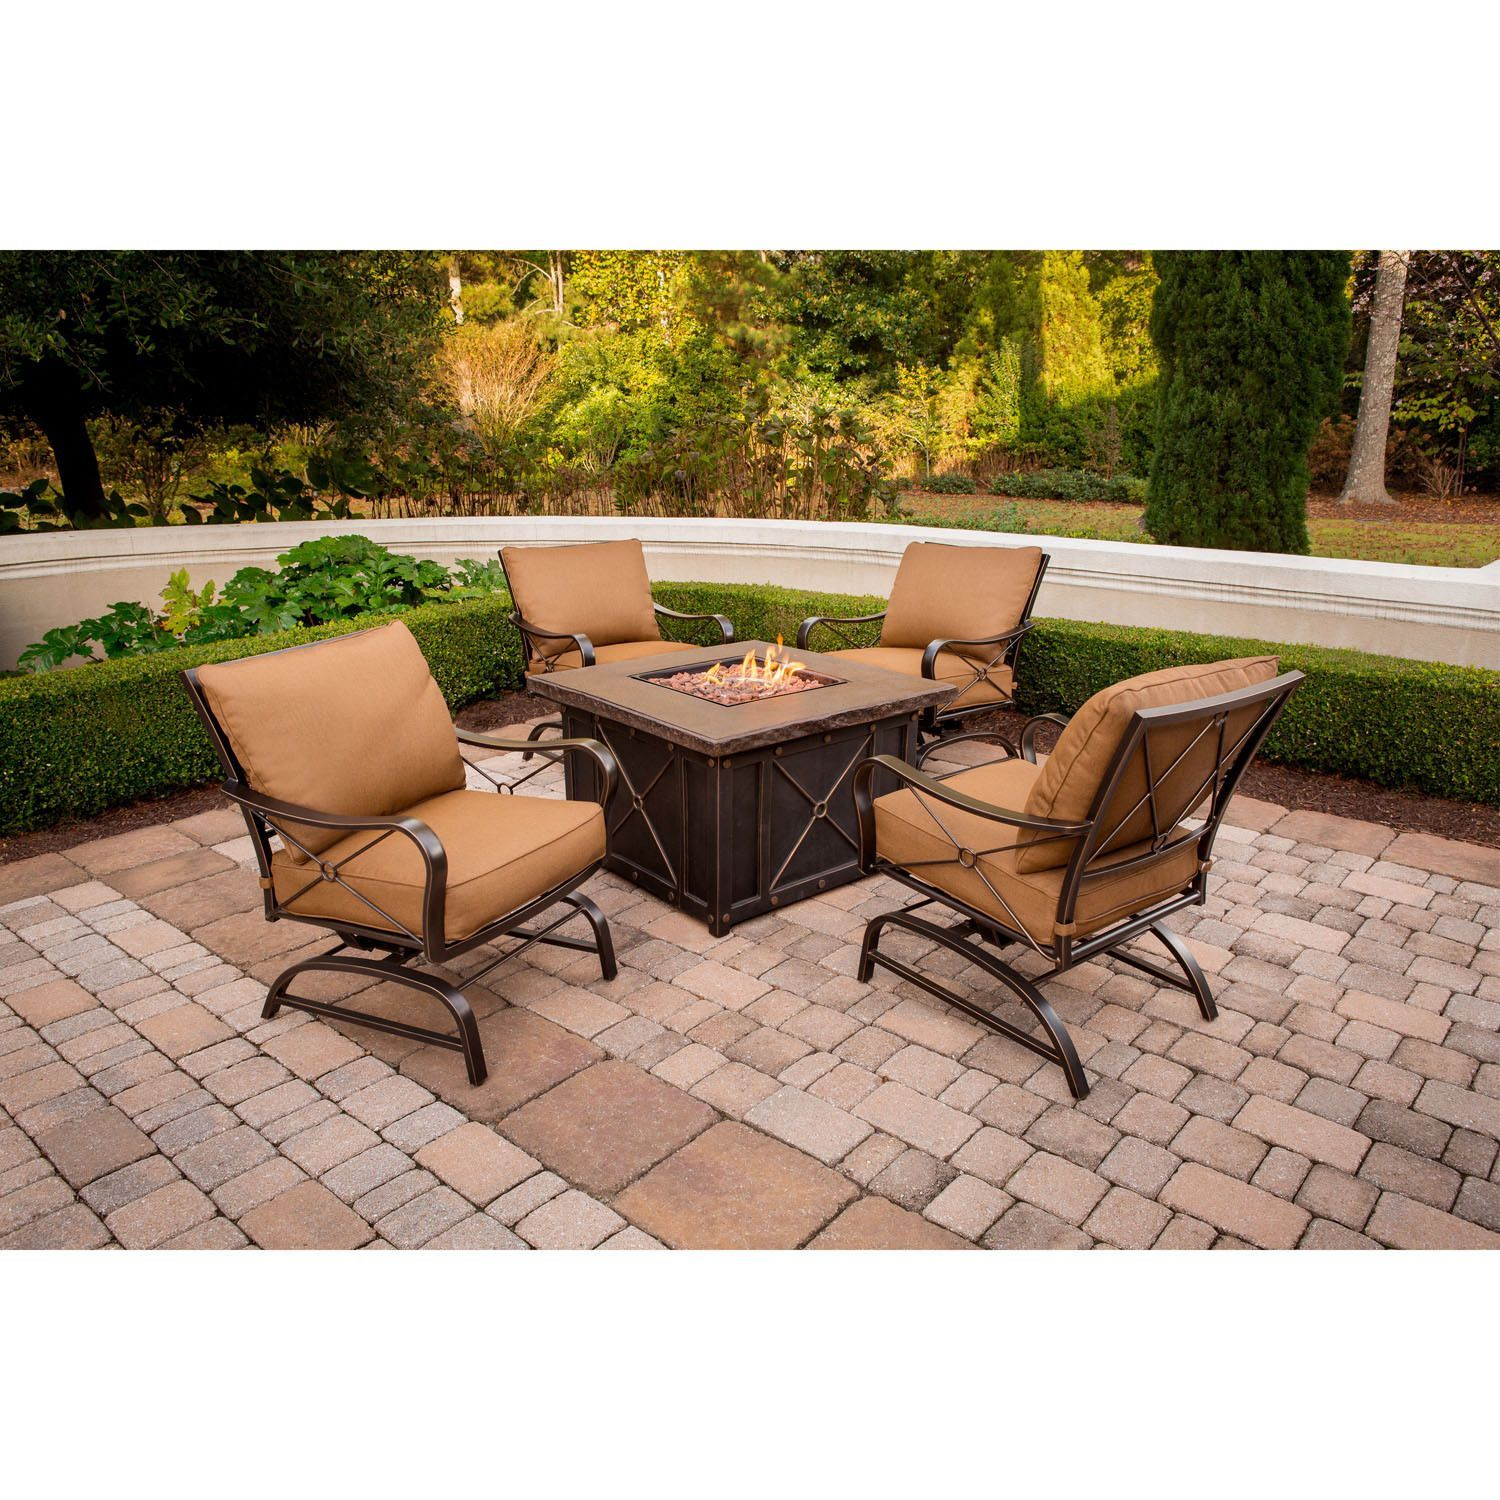 Hanover Outdoor Summer Nights 5 Piece Fire Pit Lounge Set (Durastone/Tan  Cushion), Brown, Size 5 Piece Sets, Patio Furniture (Polyester)